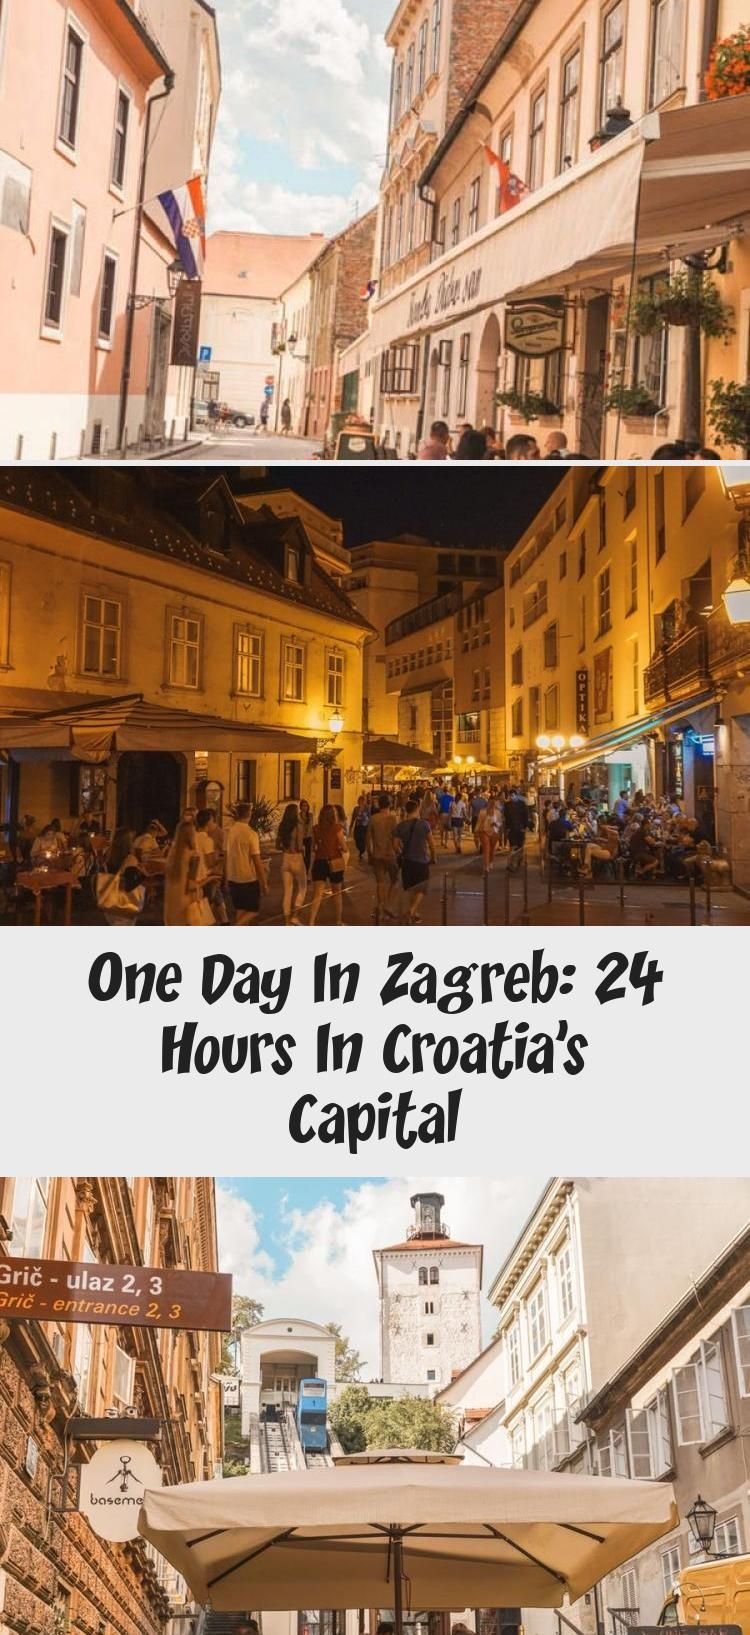 One Day In Zagreb 24 Hours In Croatia S Capital Travel Vacation Holiday Vacation Trips Zagreb Travel